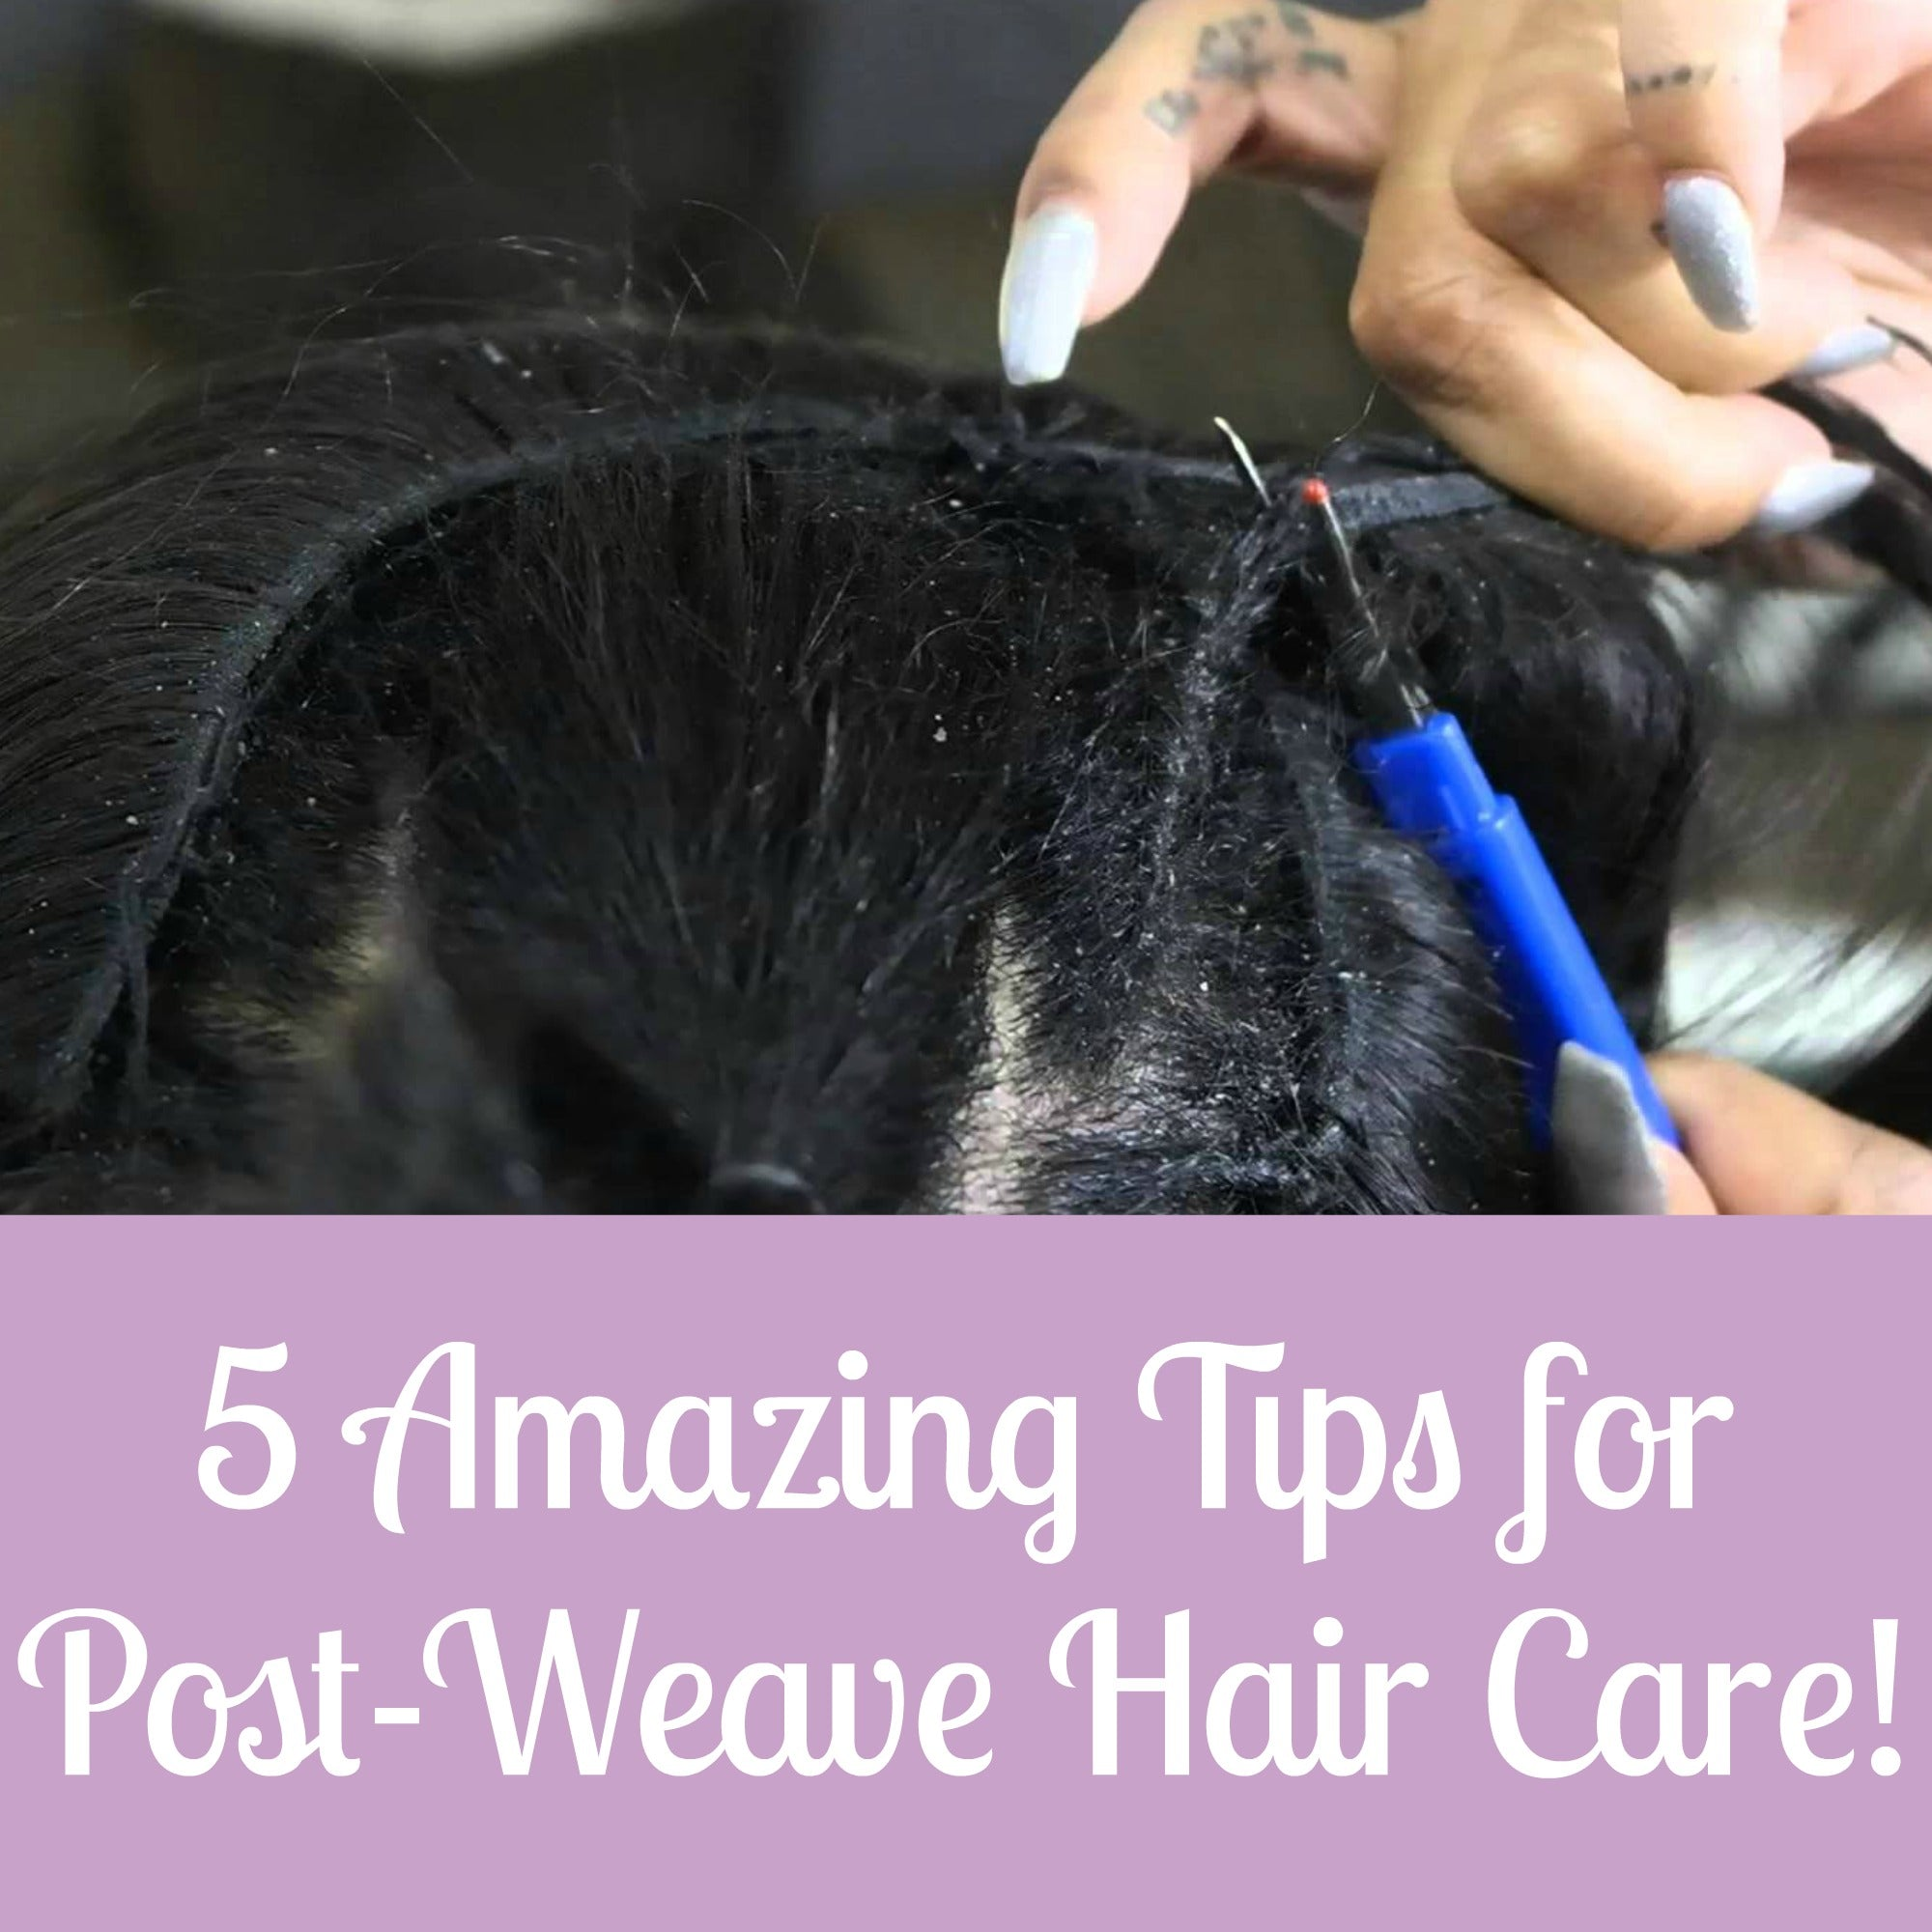 5 AMAZING TIPS FOR POST-WEAVE HAIR CARE